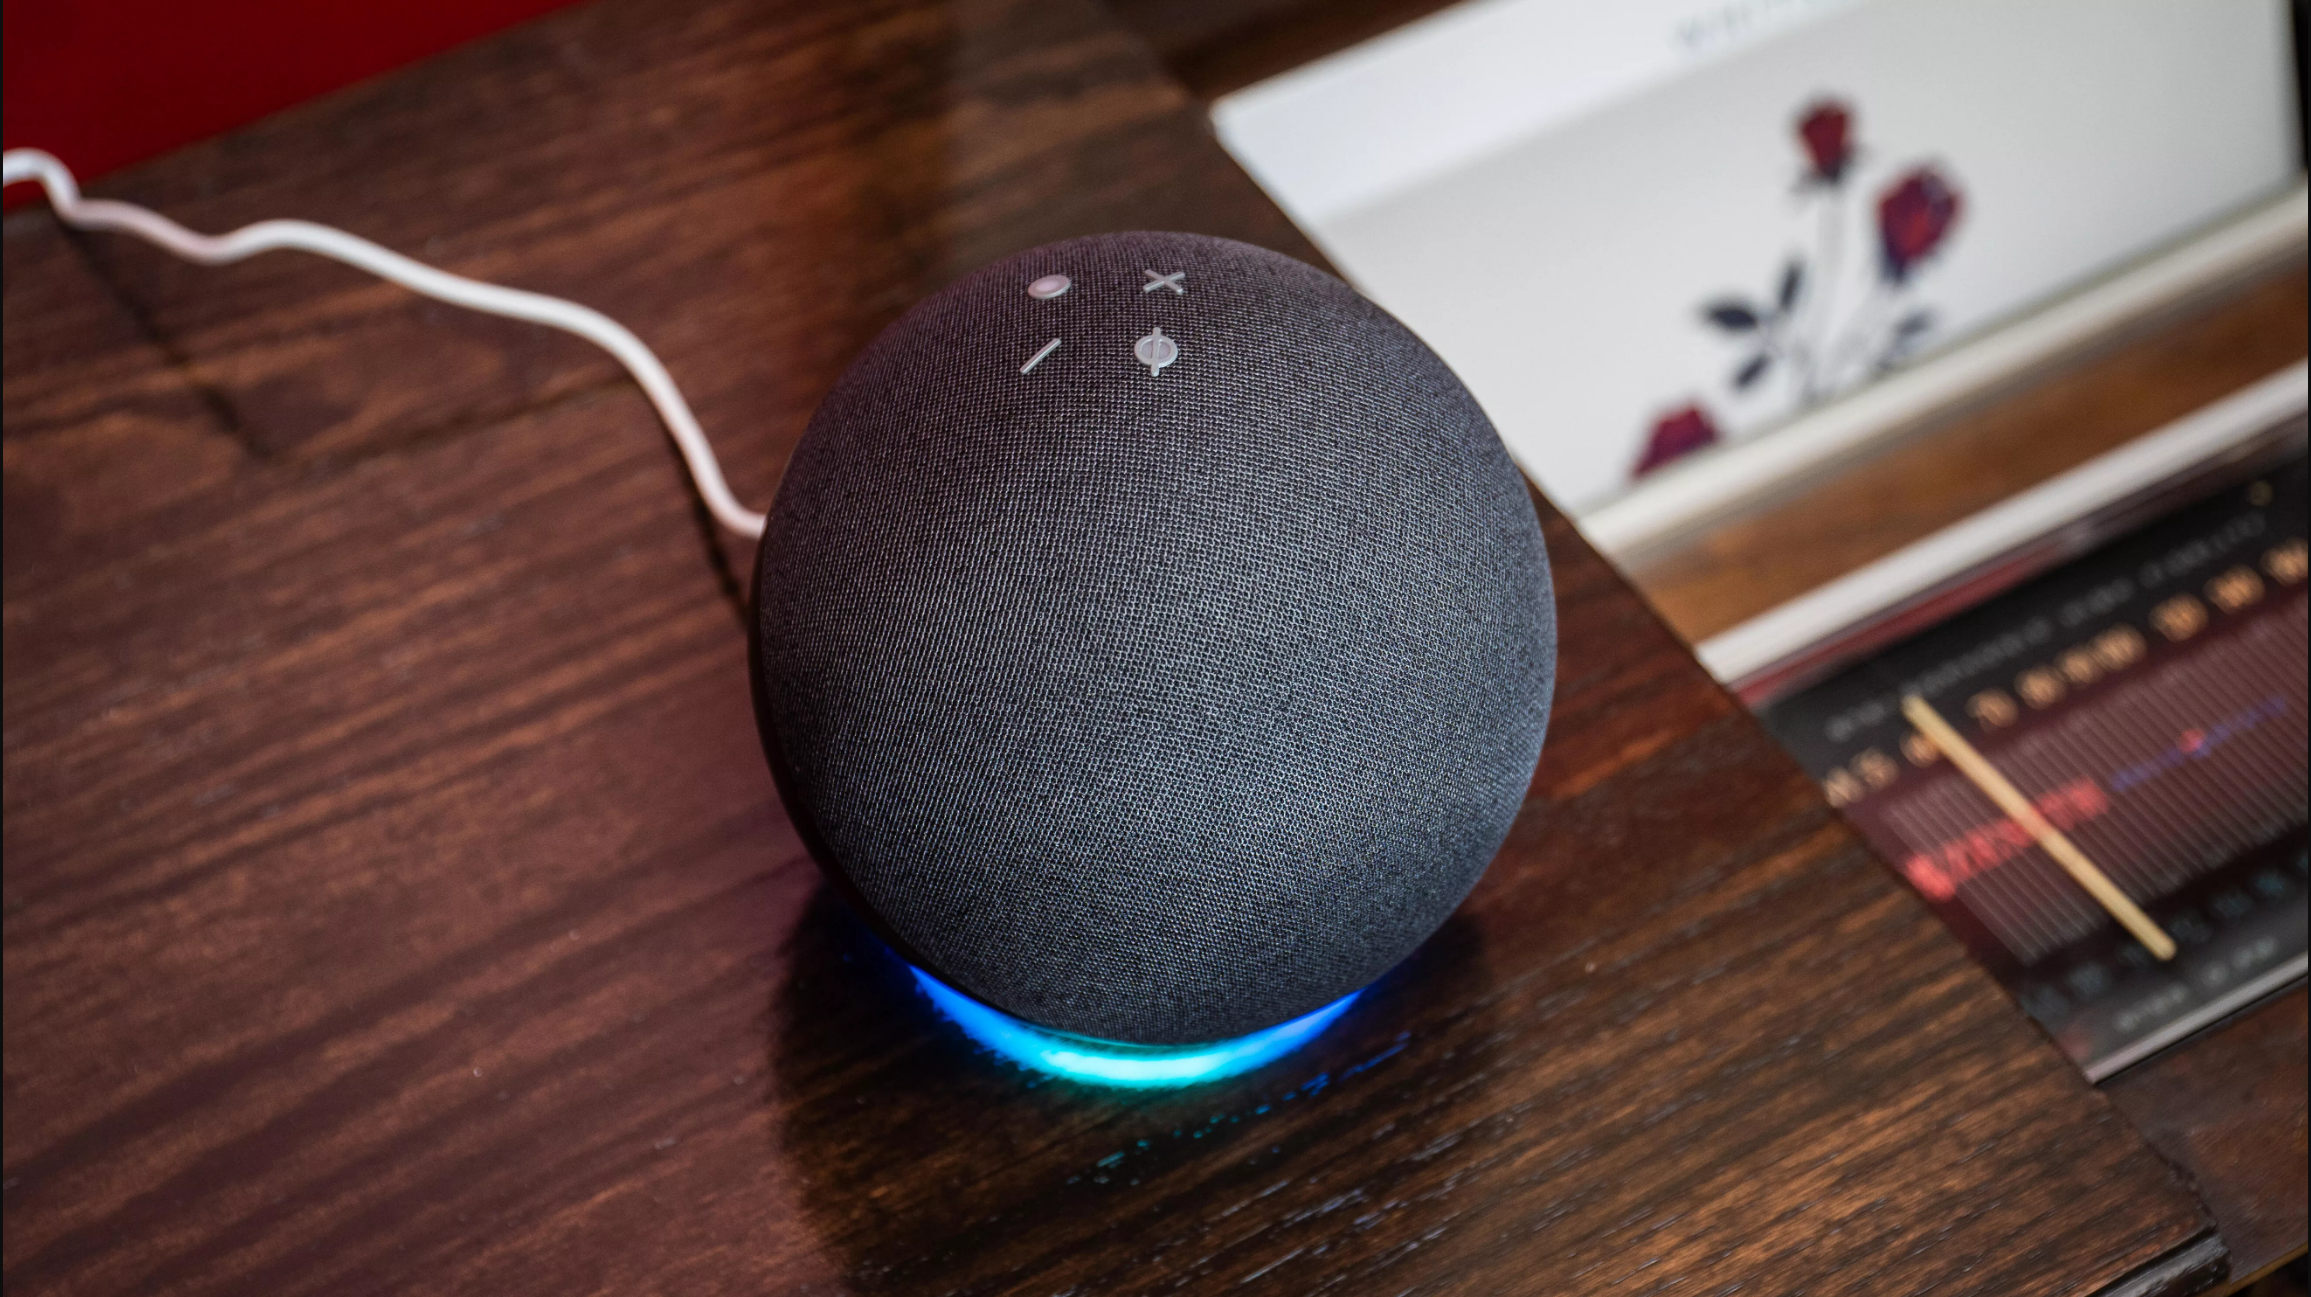 Podcasts on Alexa can be perplexing, but mastering these tips might make you a pro     - CNET